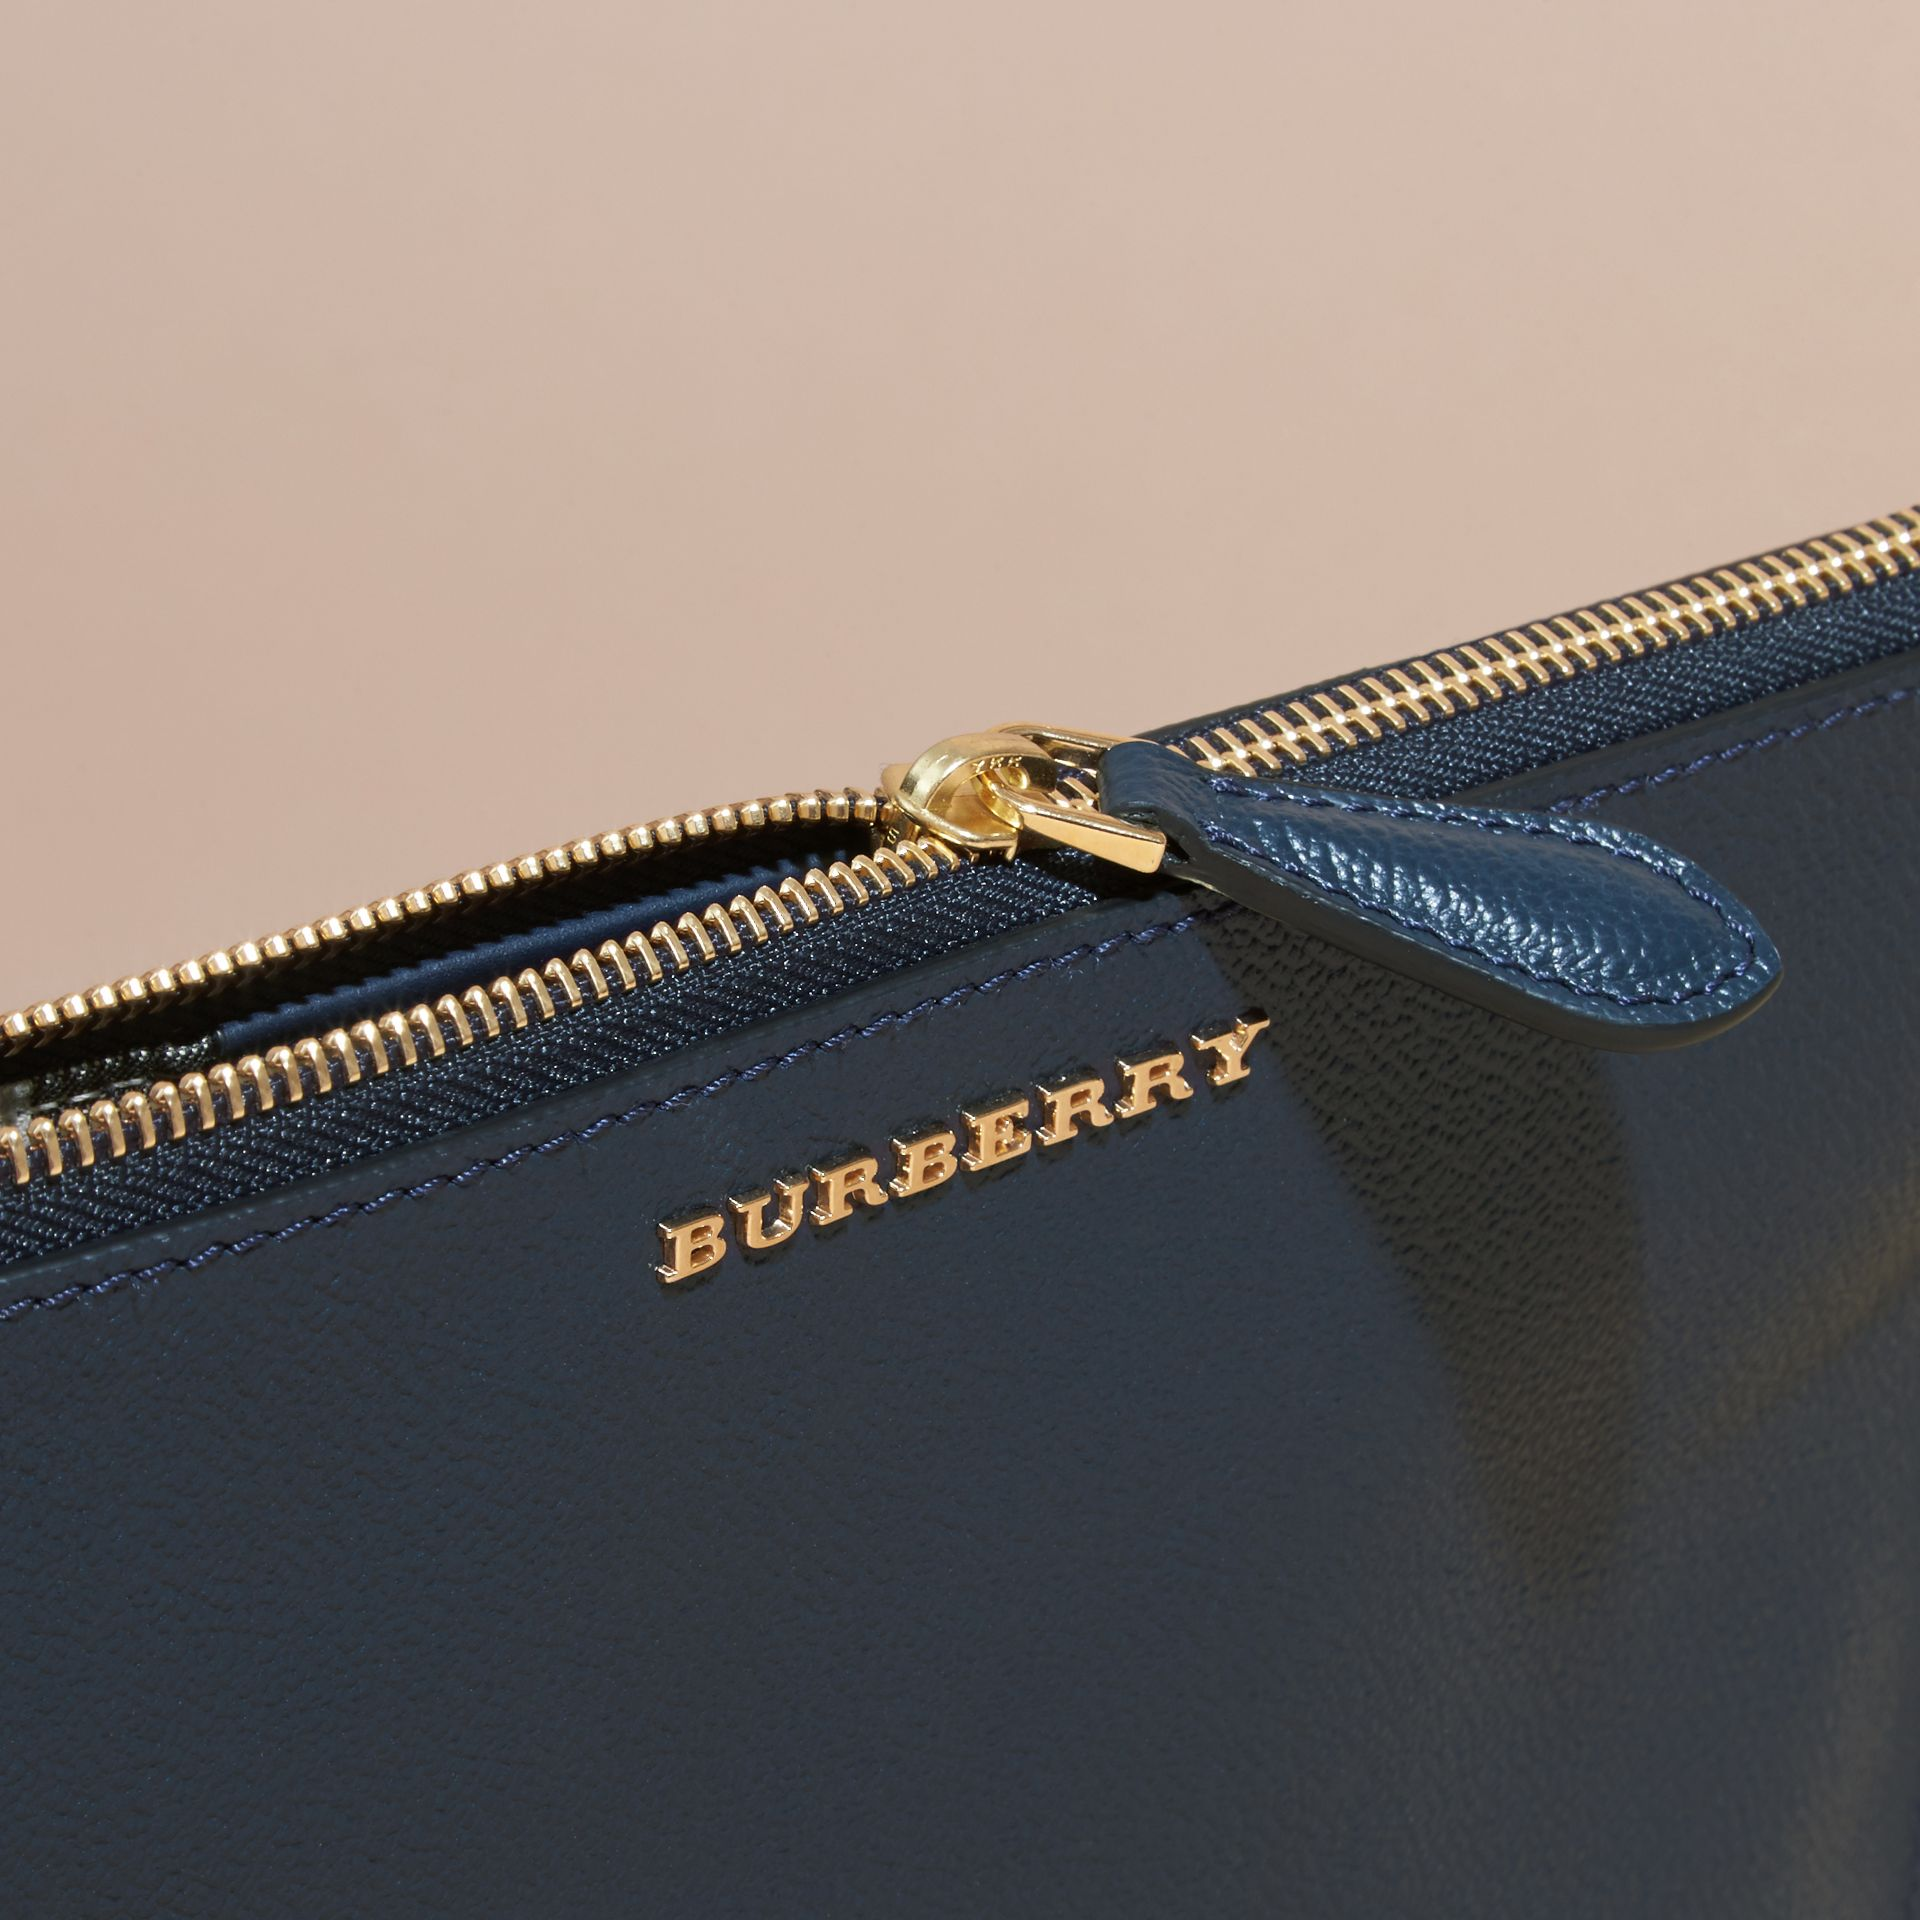 Leather Clutch Bag with Check Lining Blue Carbon - gallery image 2